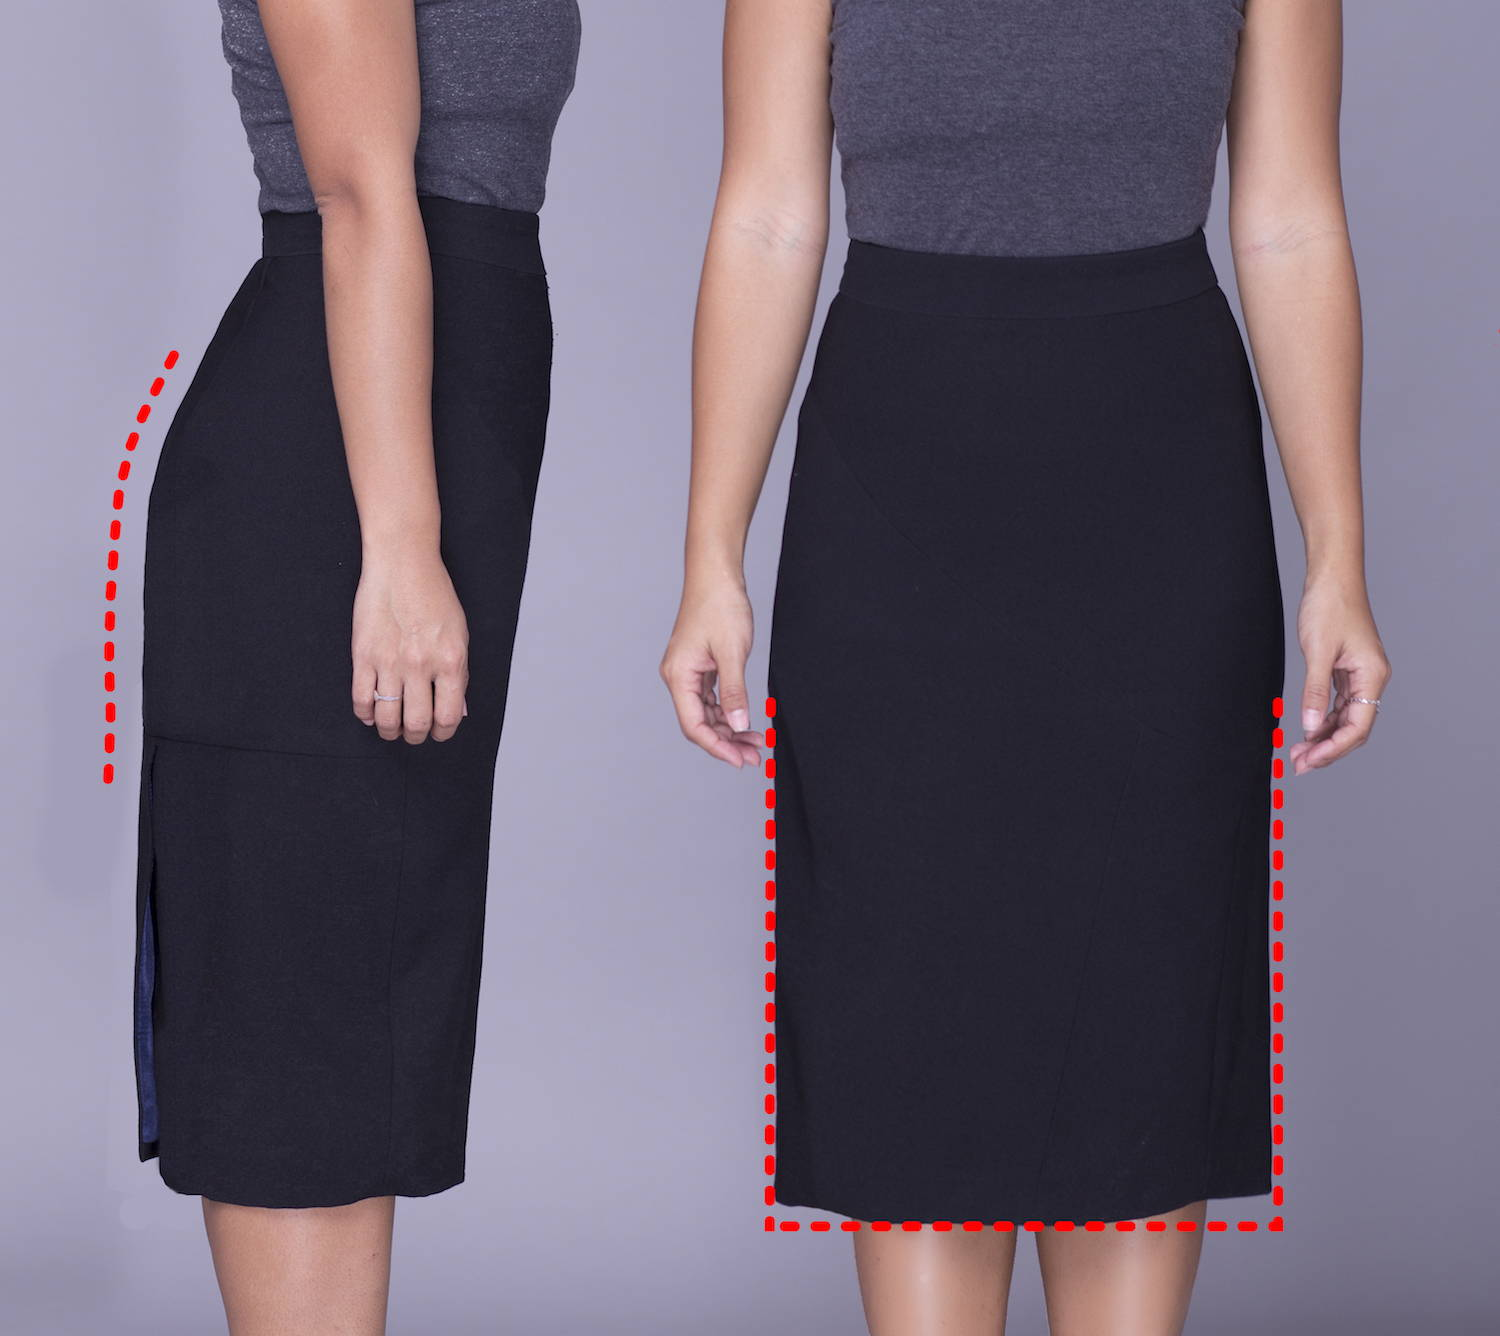 Rita Phil custom pencil skirts | Sheath fit